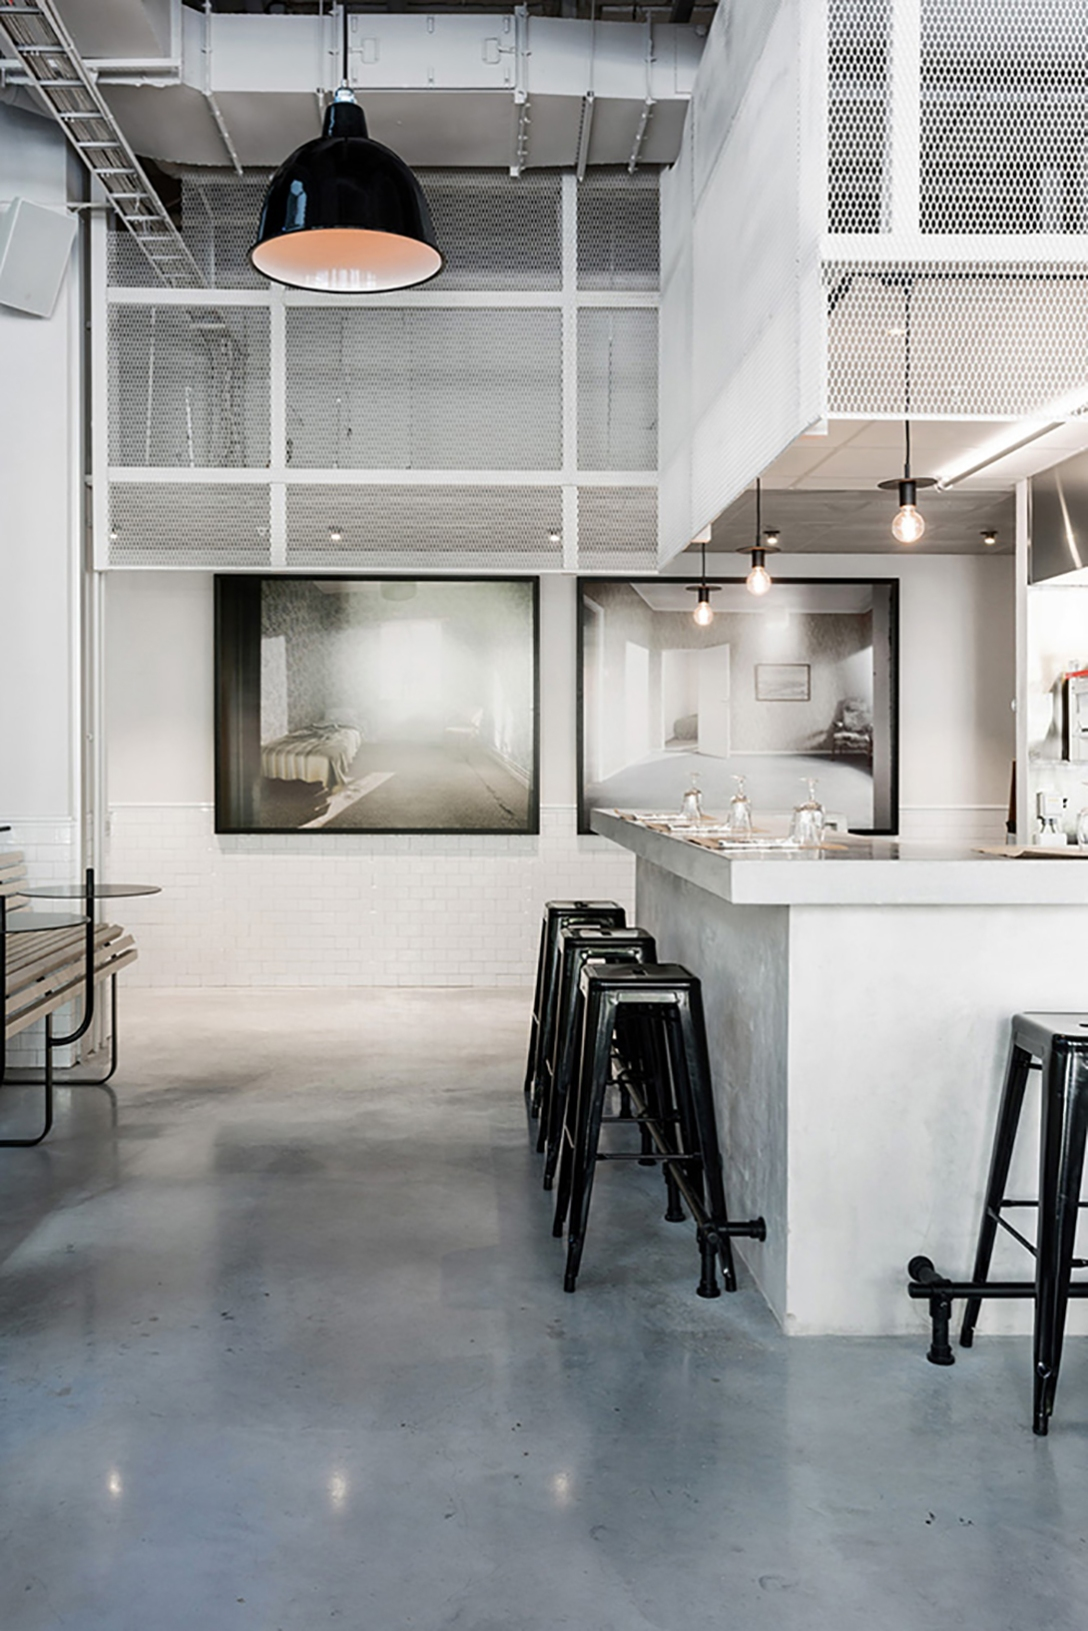 usine-restaurant-in-stockholm-by-richard-lindvall-yellowtrace-15